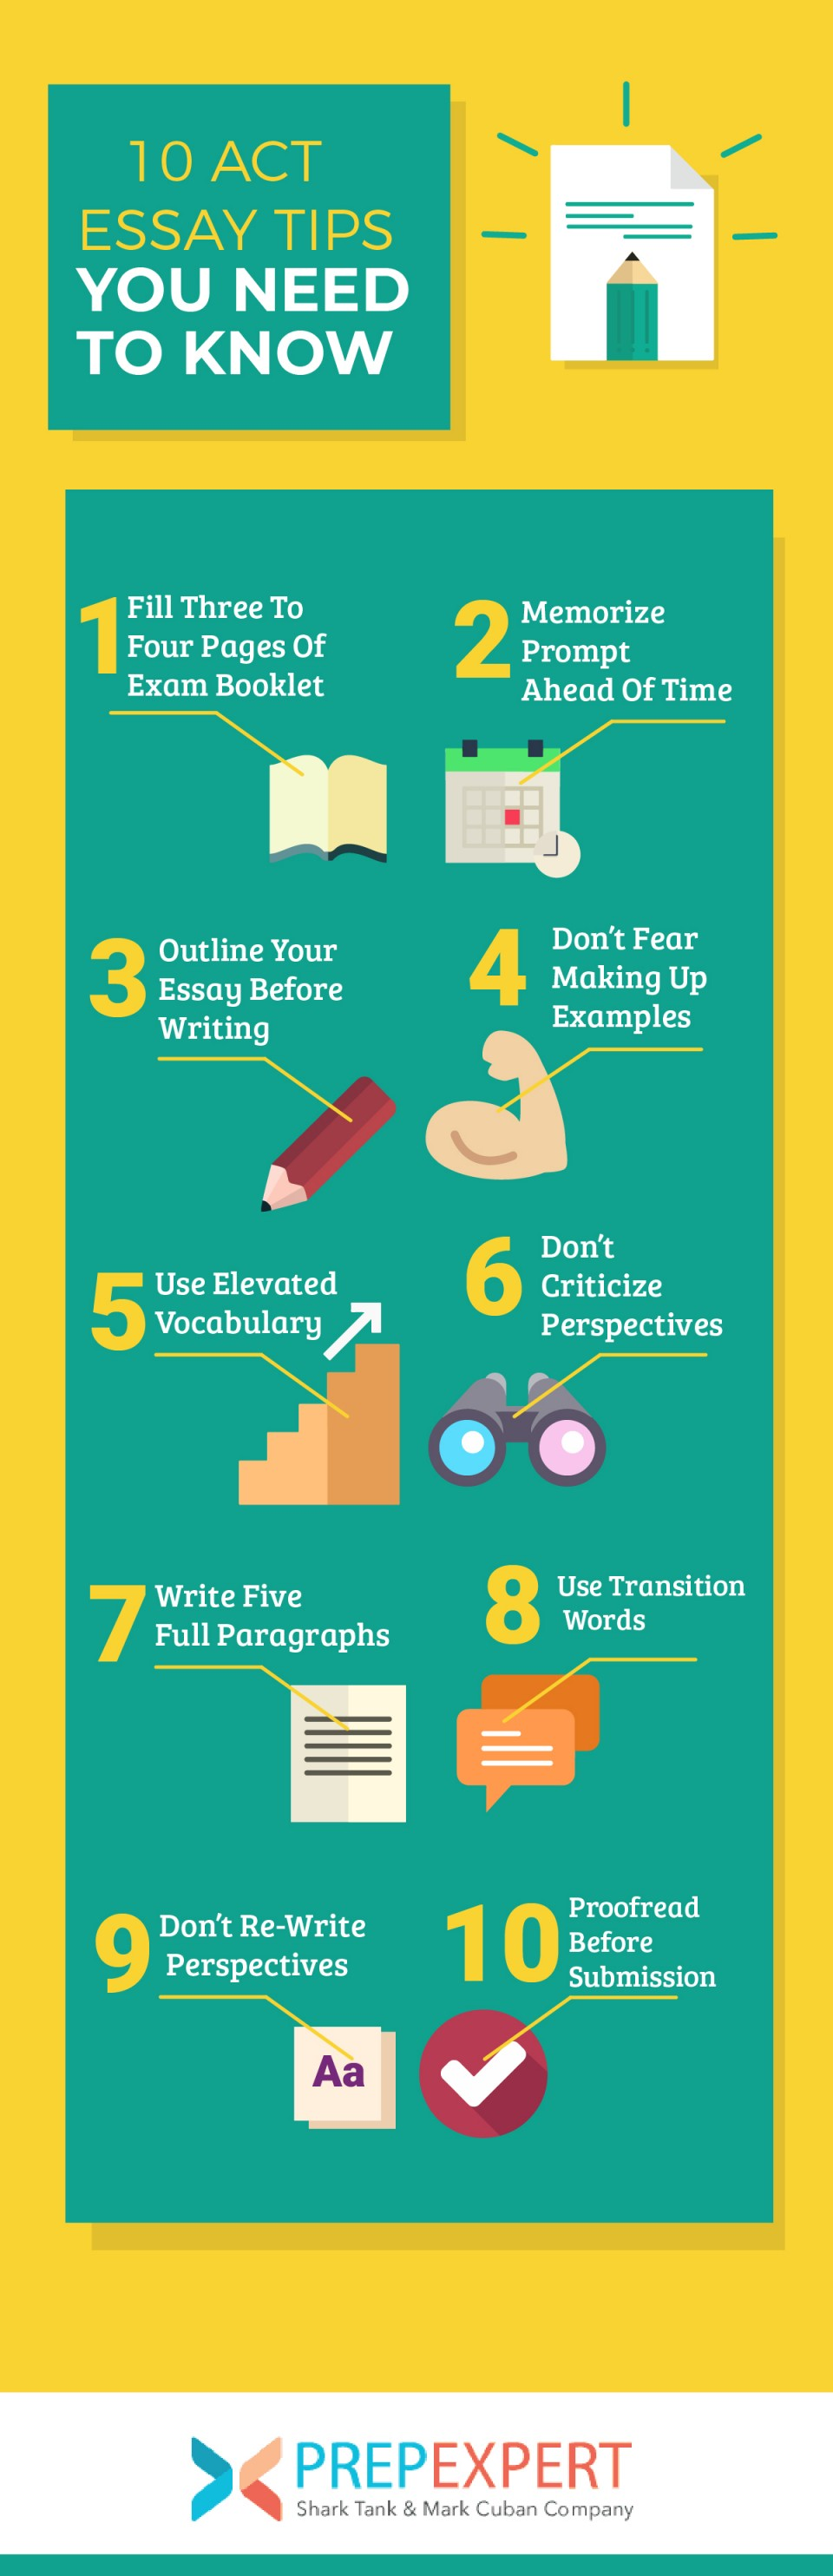 017 Essay Example Act 235585 Essayinfographics 052918 Fearsome New Time Limit Rubric Tips 960